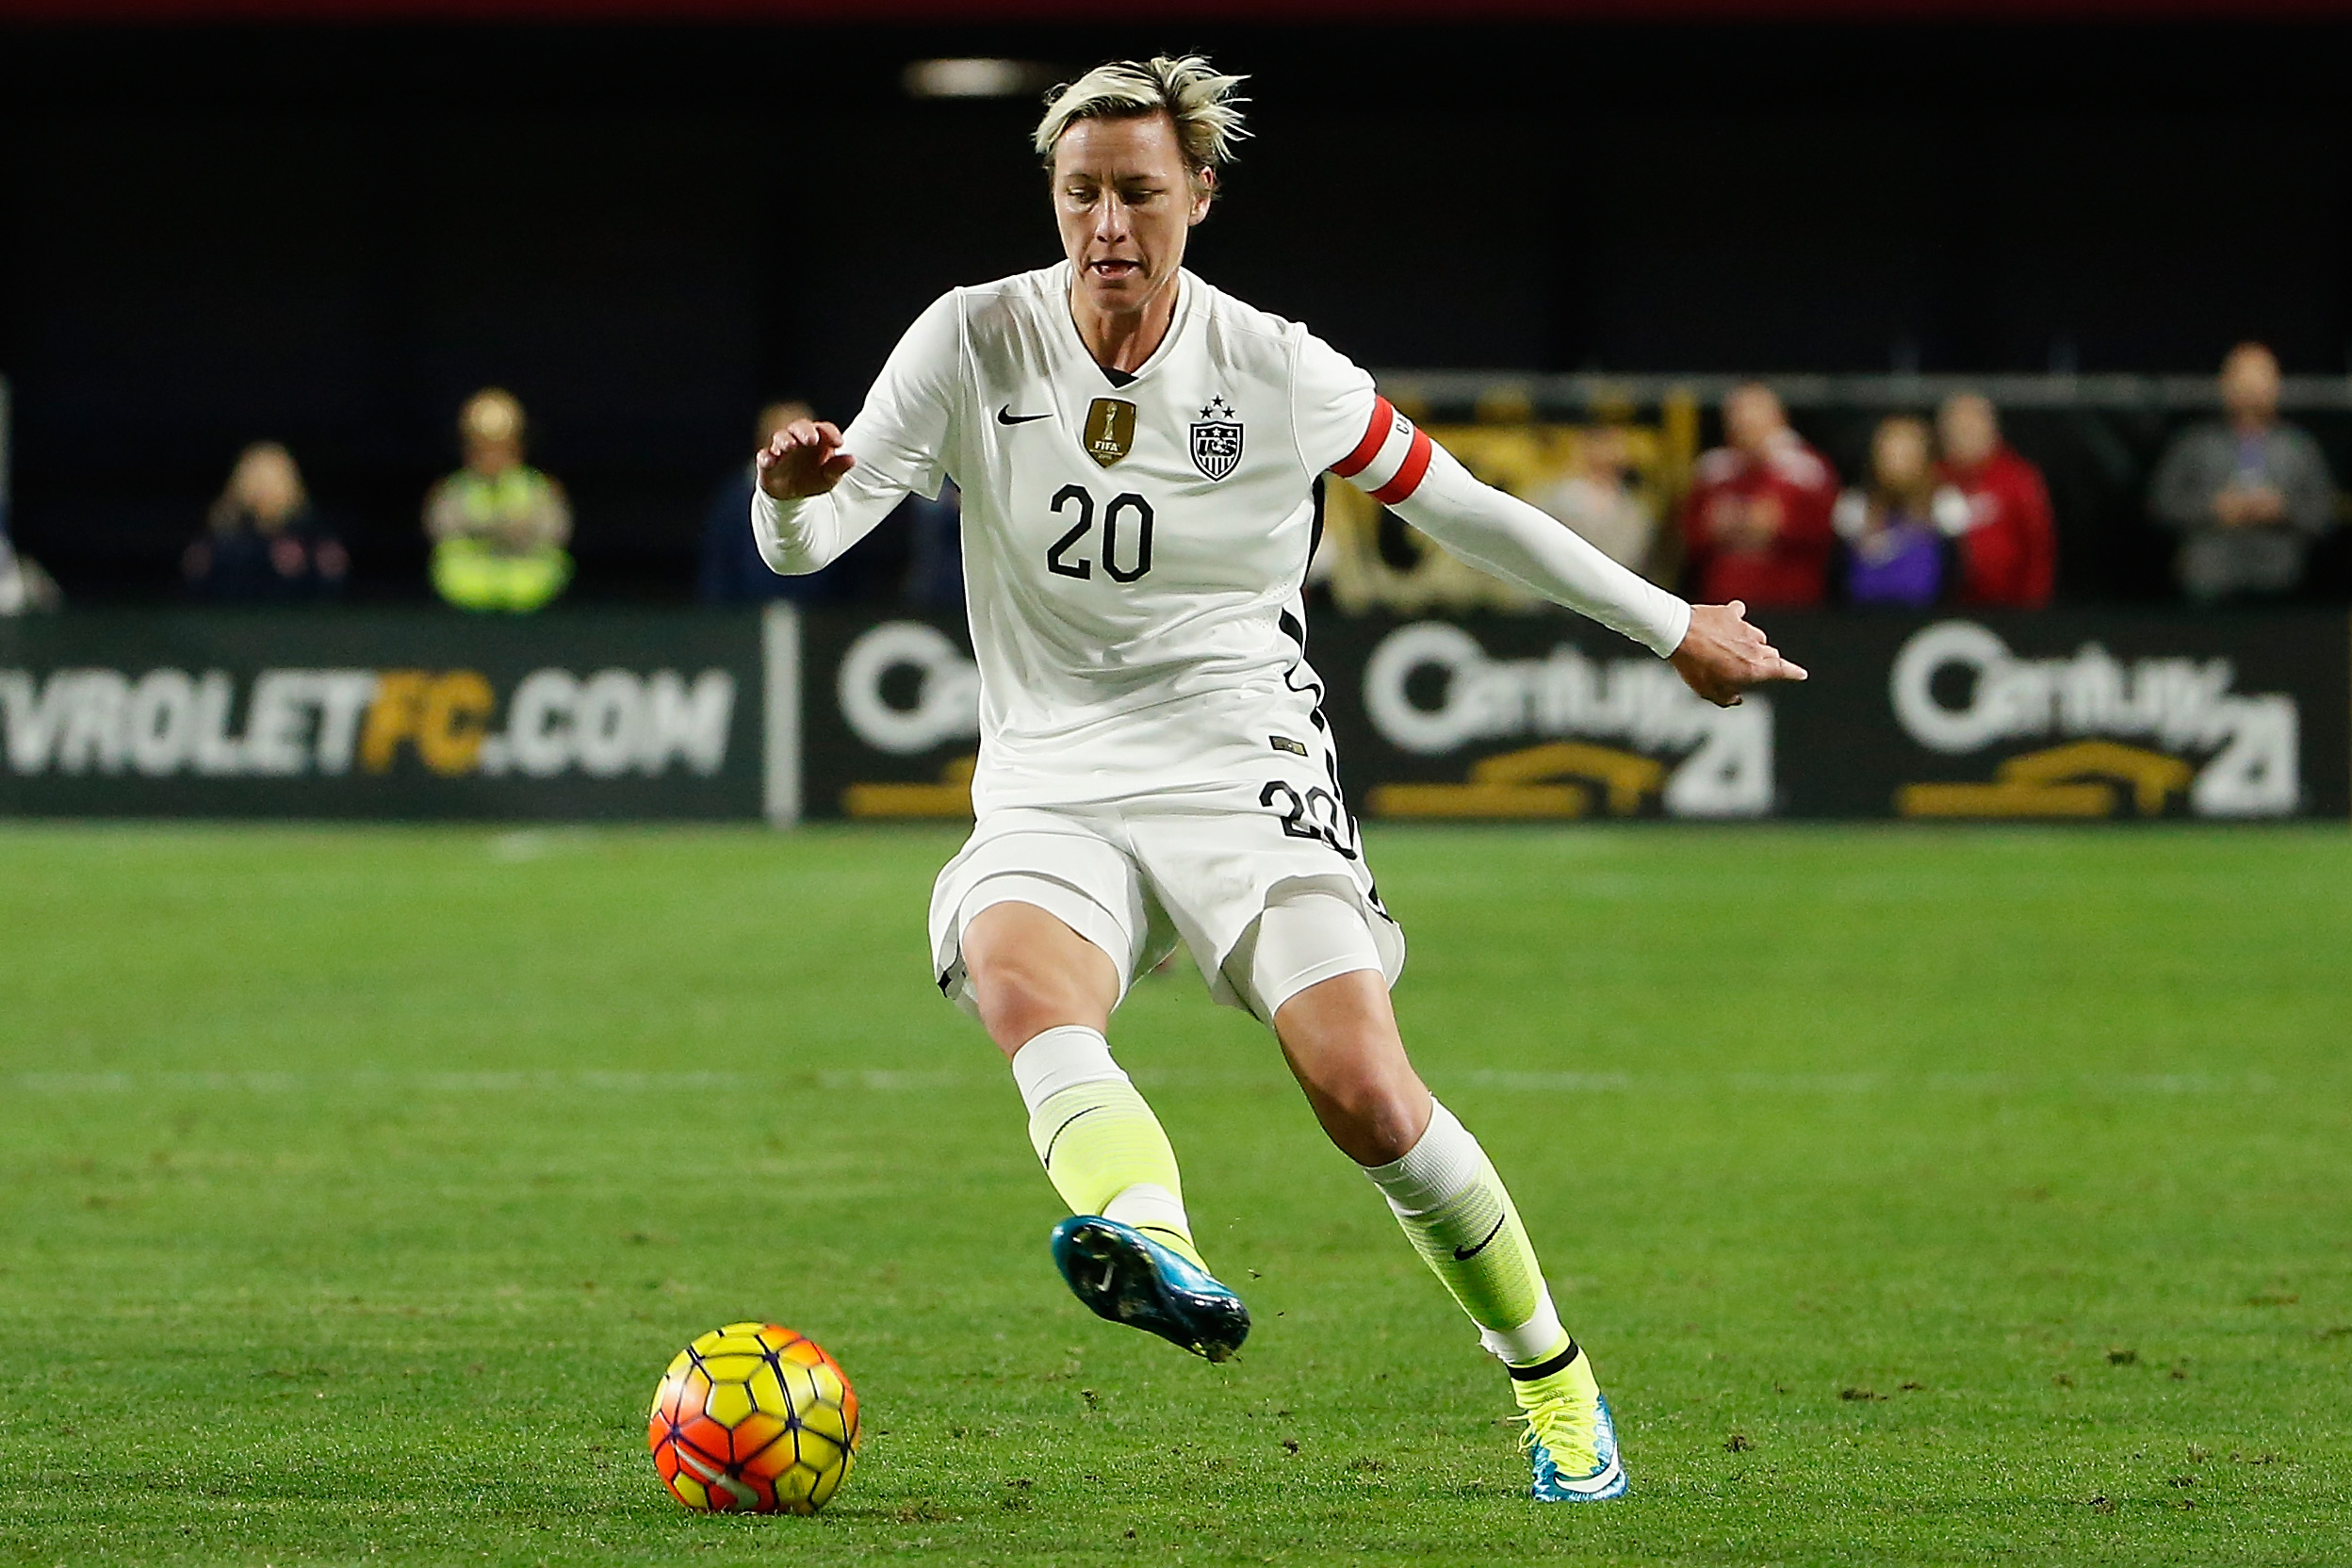 Abby Wambach, world football legend and inspiration for Sam Kerr